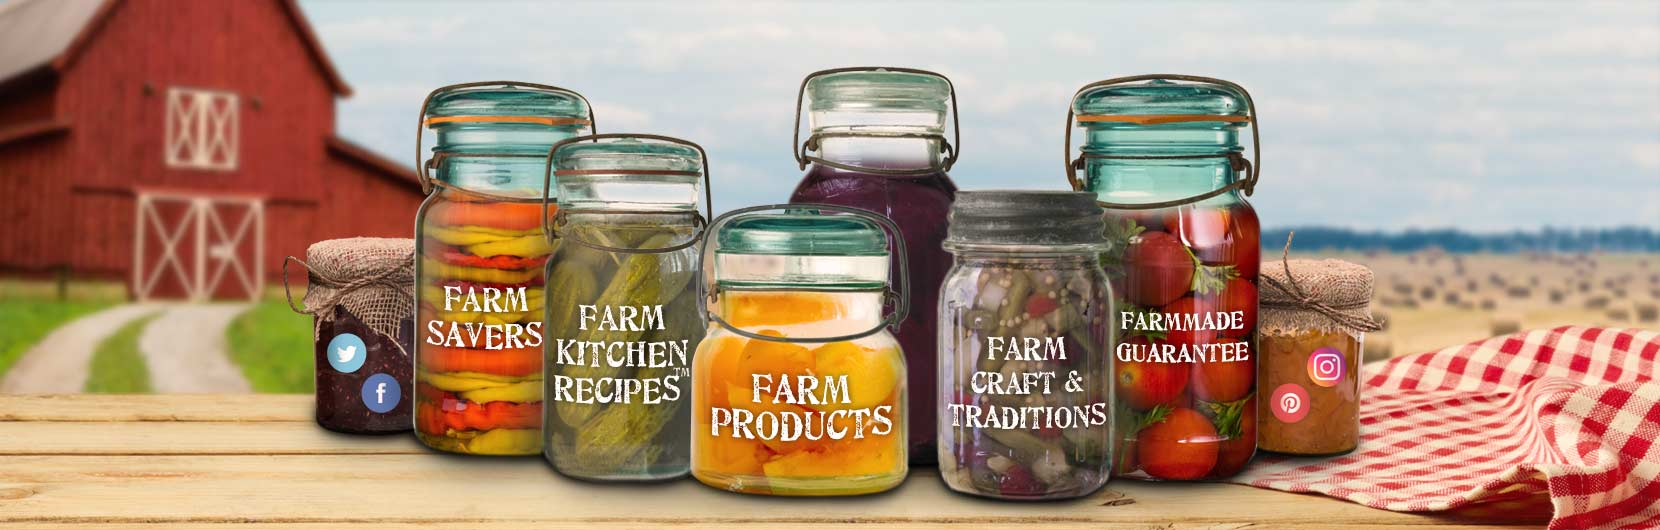 Farm Made Preserving Farm Craft and Tradition